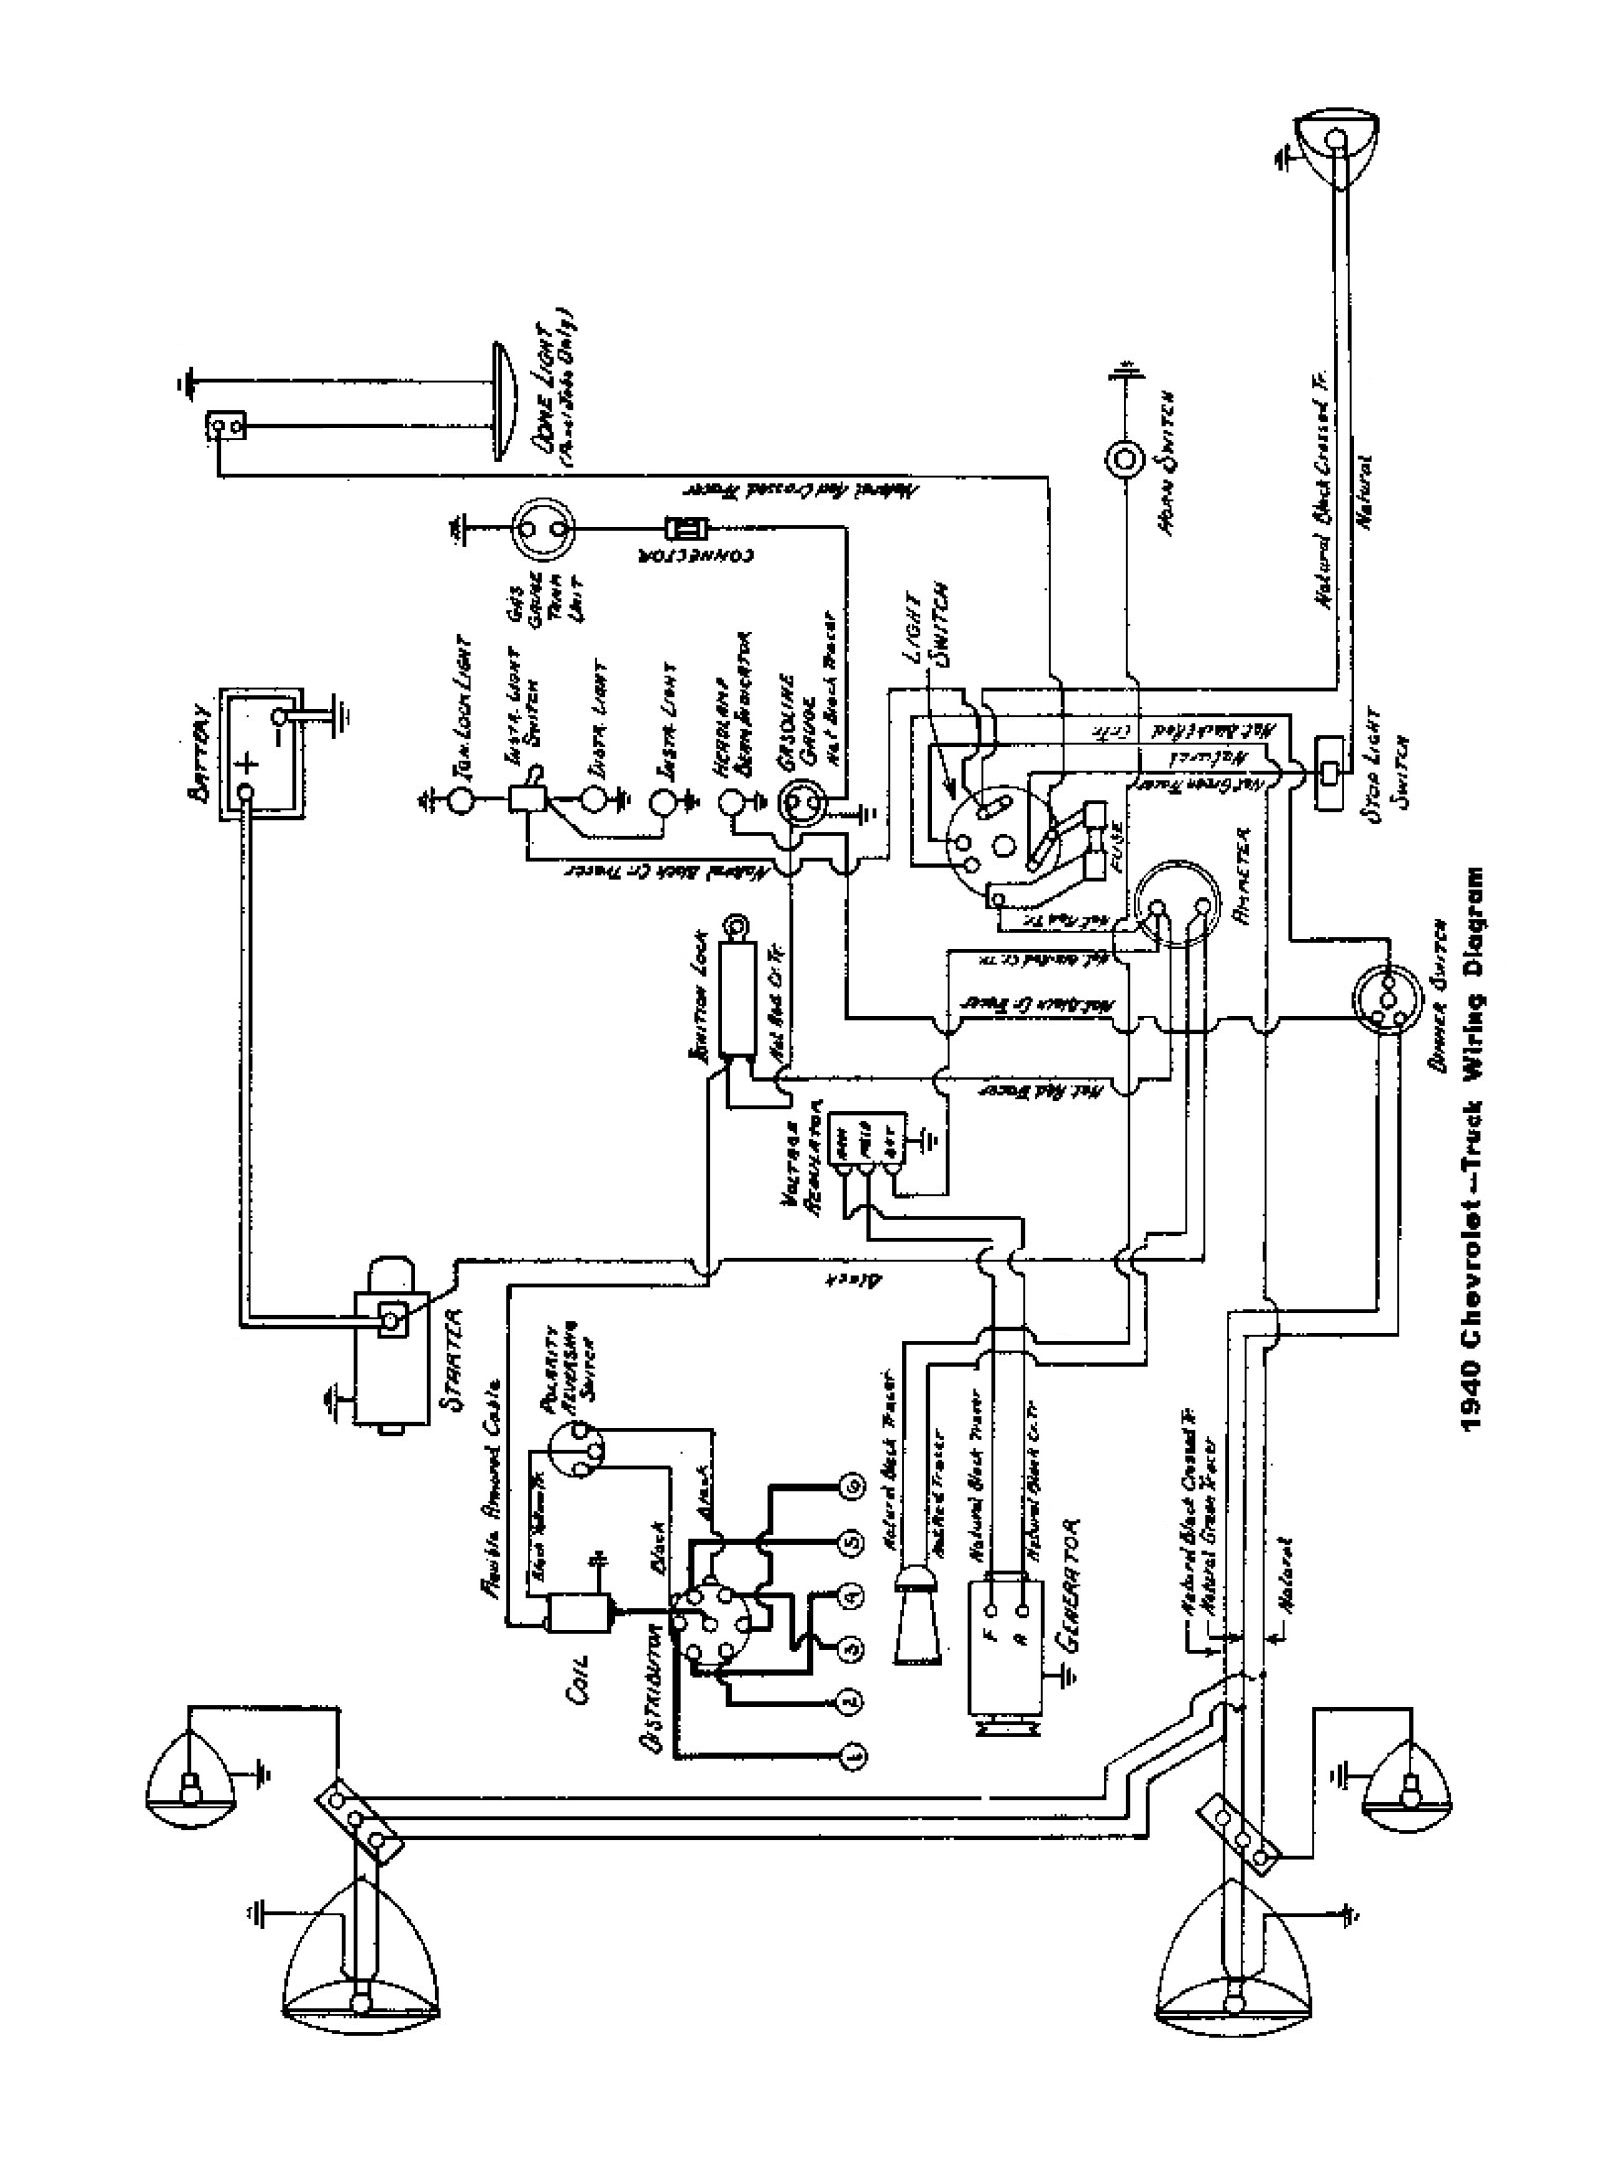 40truck 1950 chevy truck wiring harness on 1950 download wirning diagrams chevrolet truck wiring diagrams free at soozxer.org